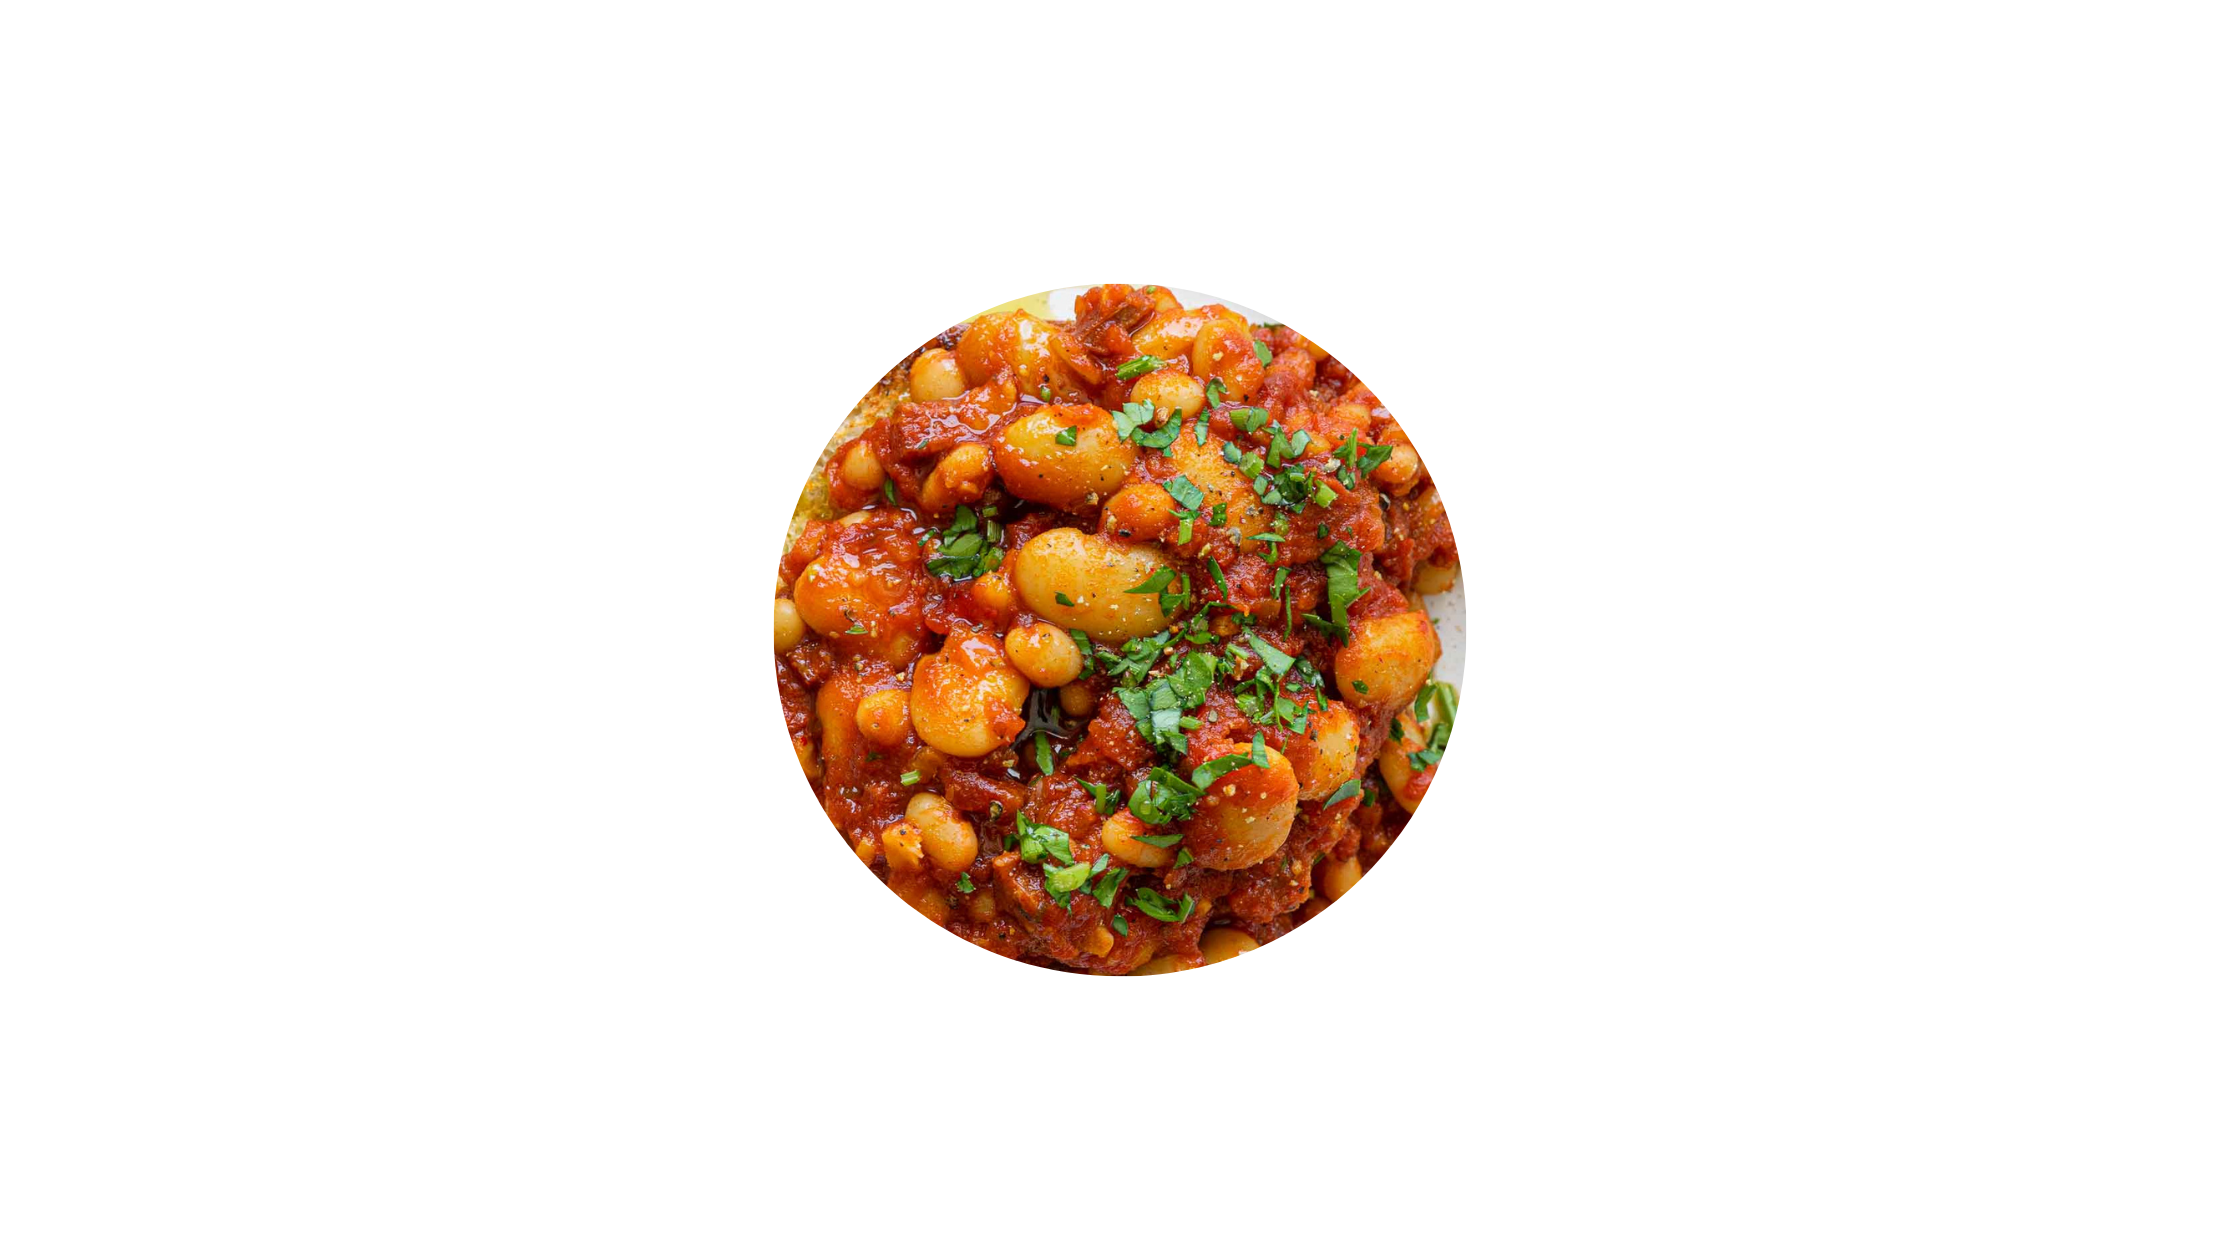 Binge on the Recipe of Legumes and Tomatoes